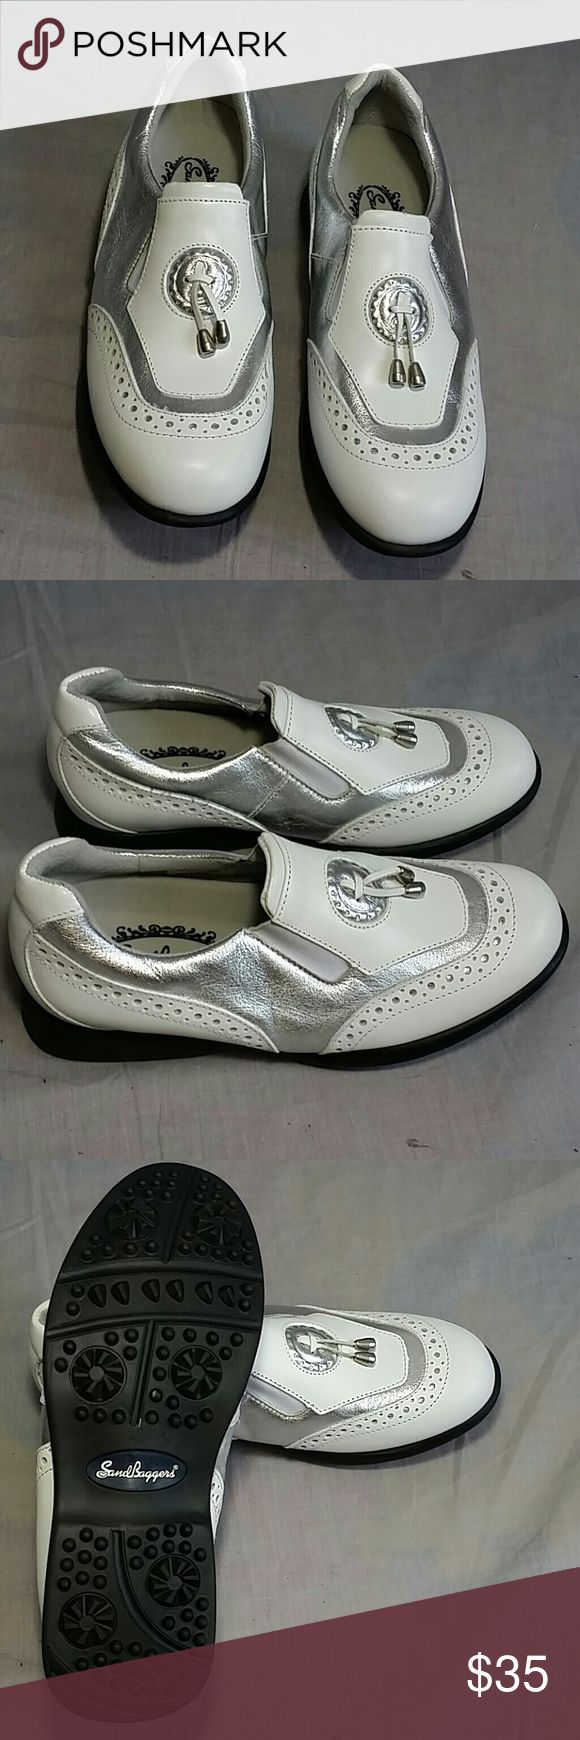 Women's Sand Baggers Golf Shoes 6.5 M Leather Slip-on Silver/White, item it's just like NEW, NO PETS AND SMOKE FREE HOME. Sand Baggers  Shoes Athletic Shoes